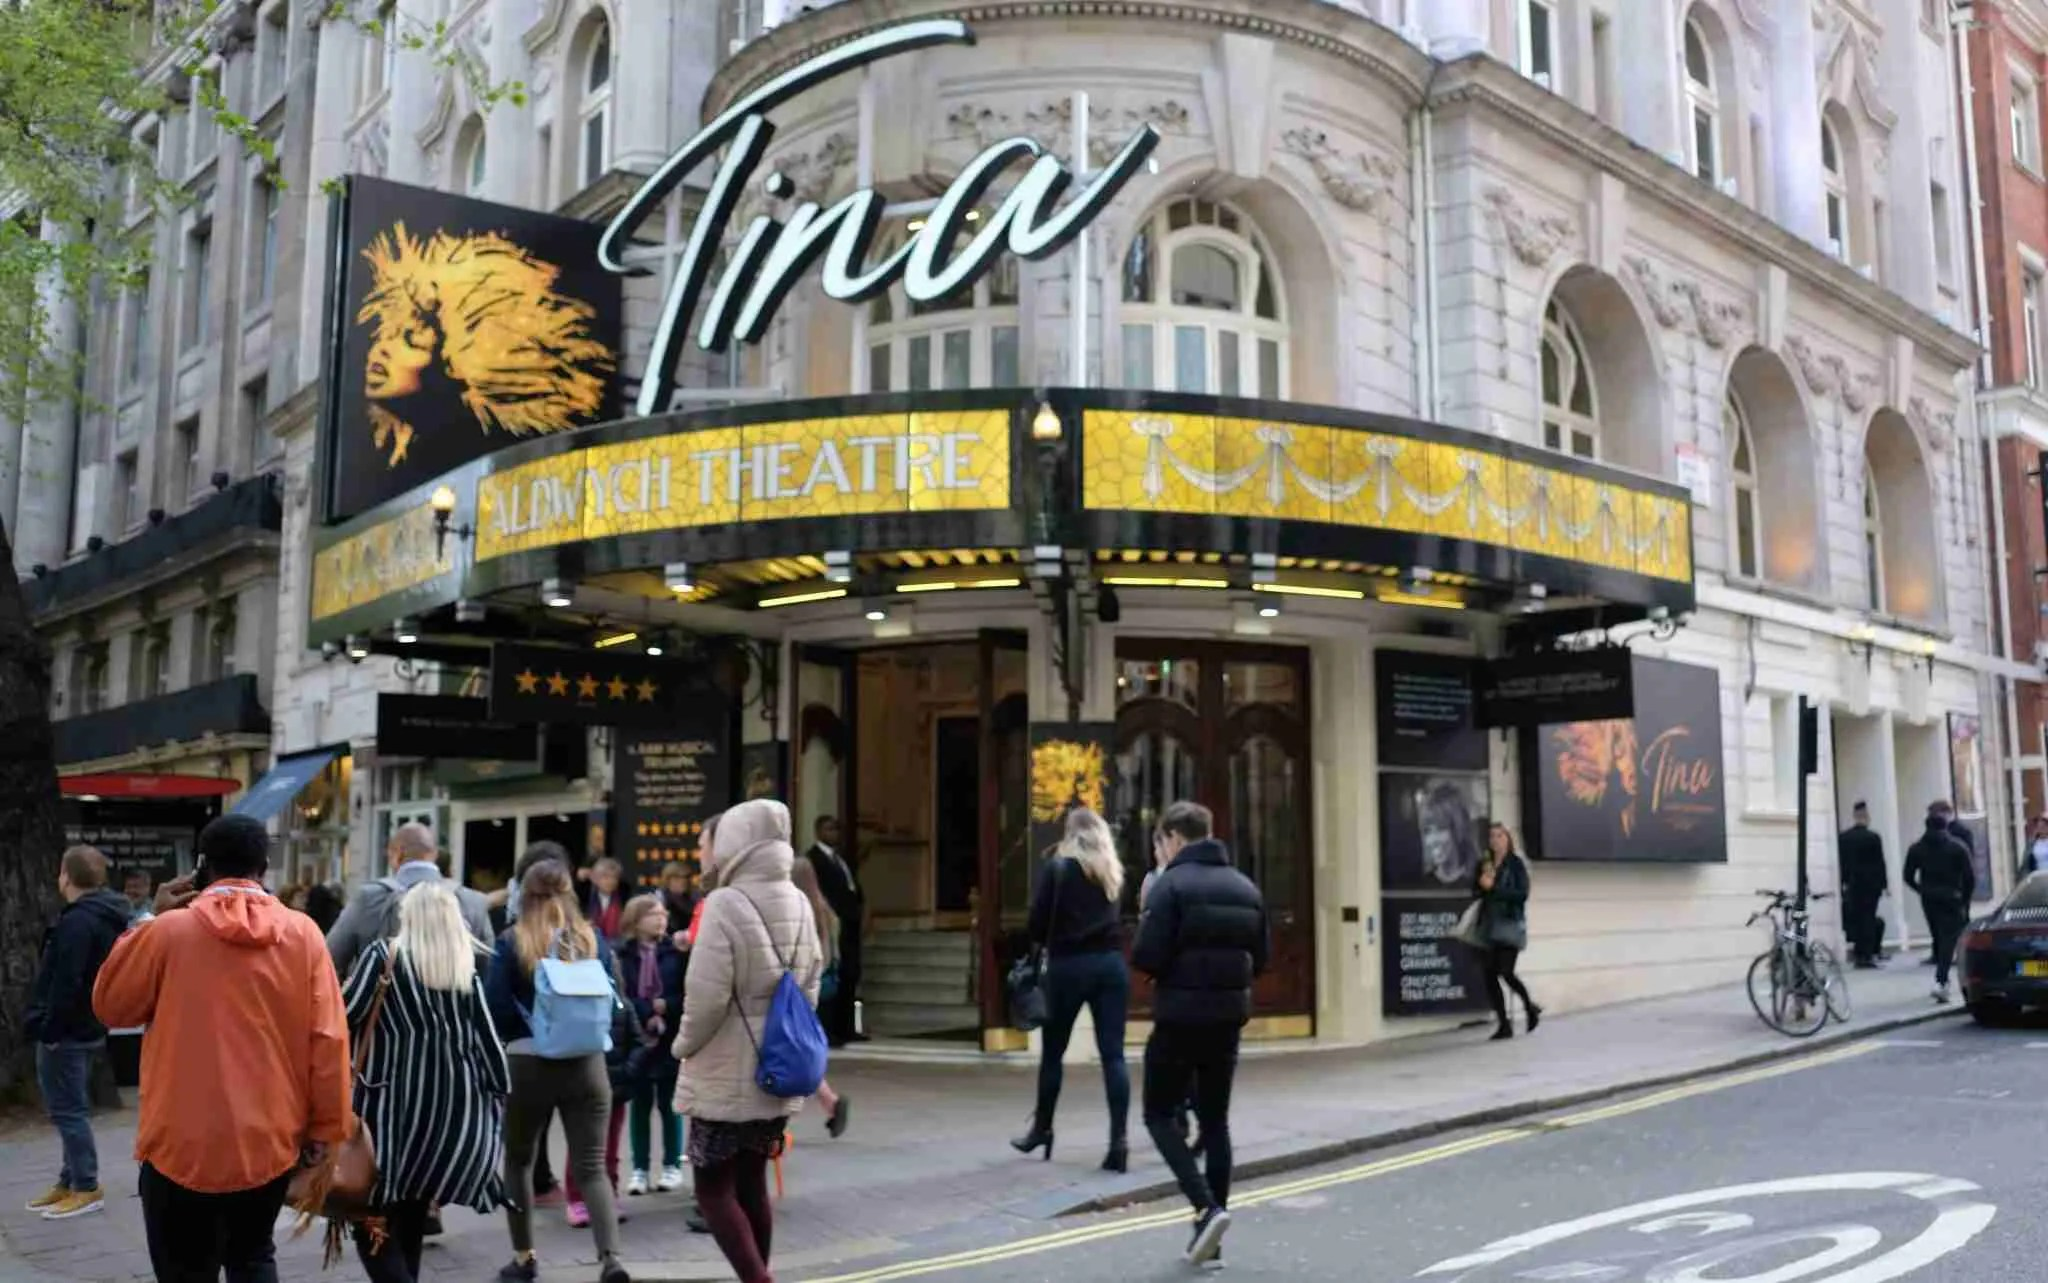 Aldwych-Theatre-Box-Office-London